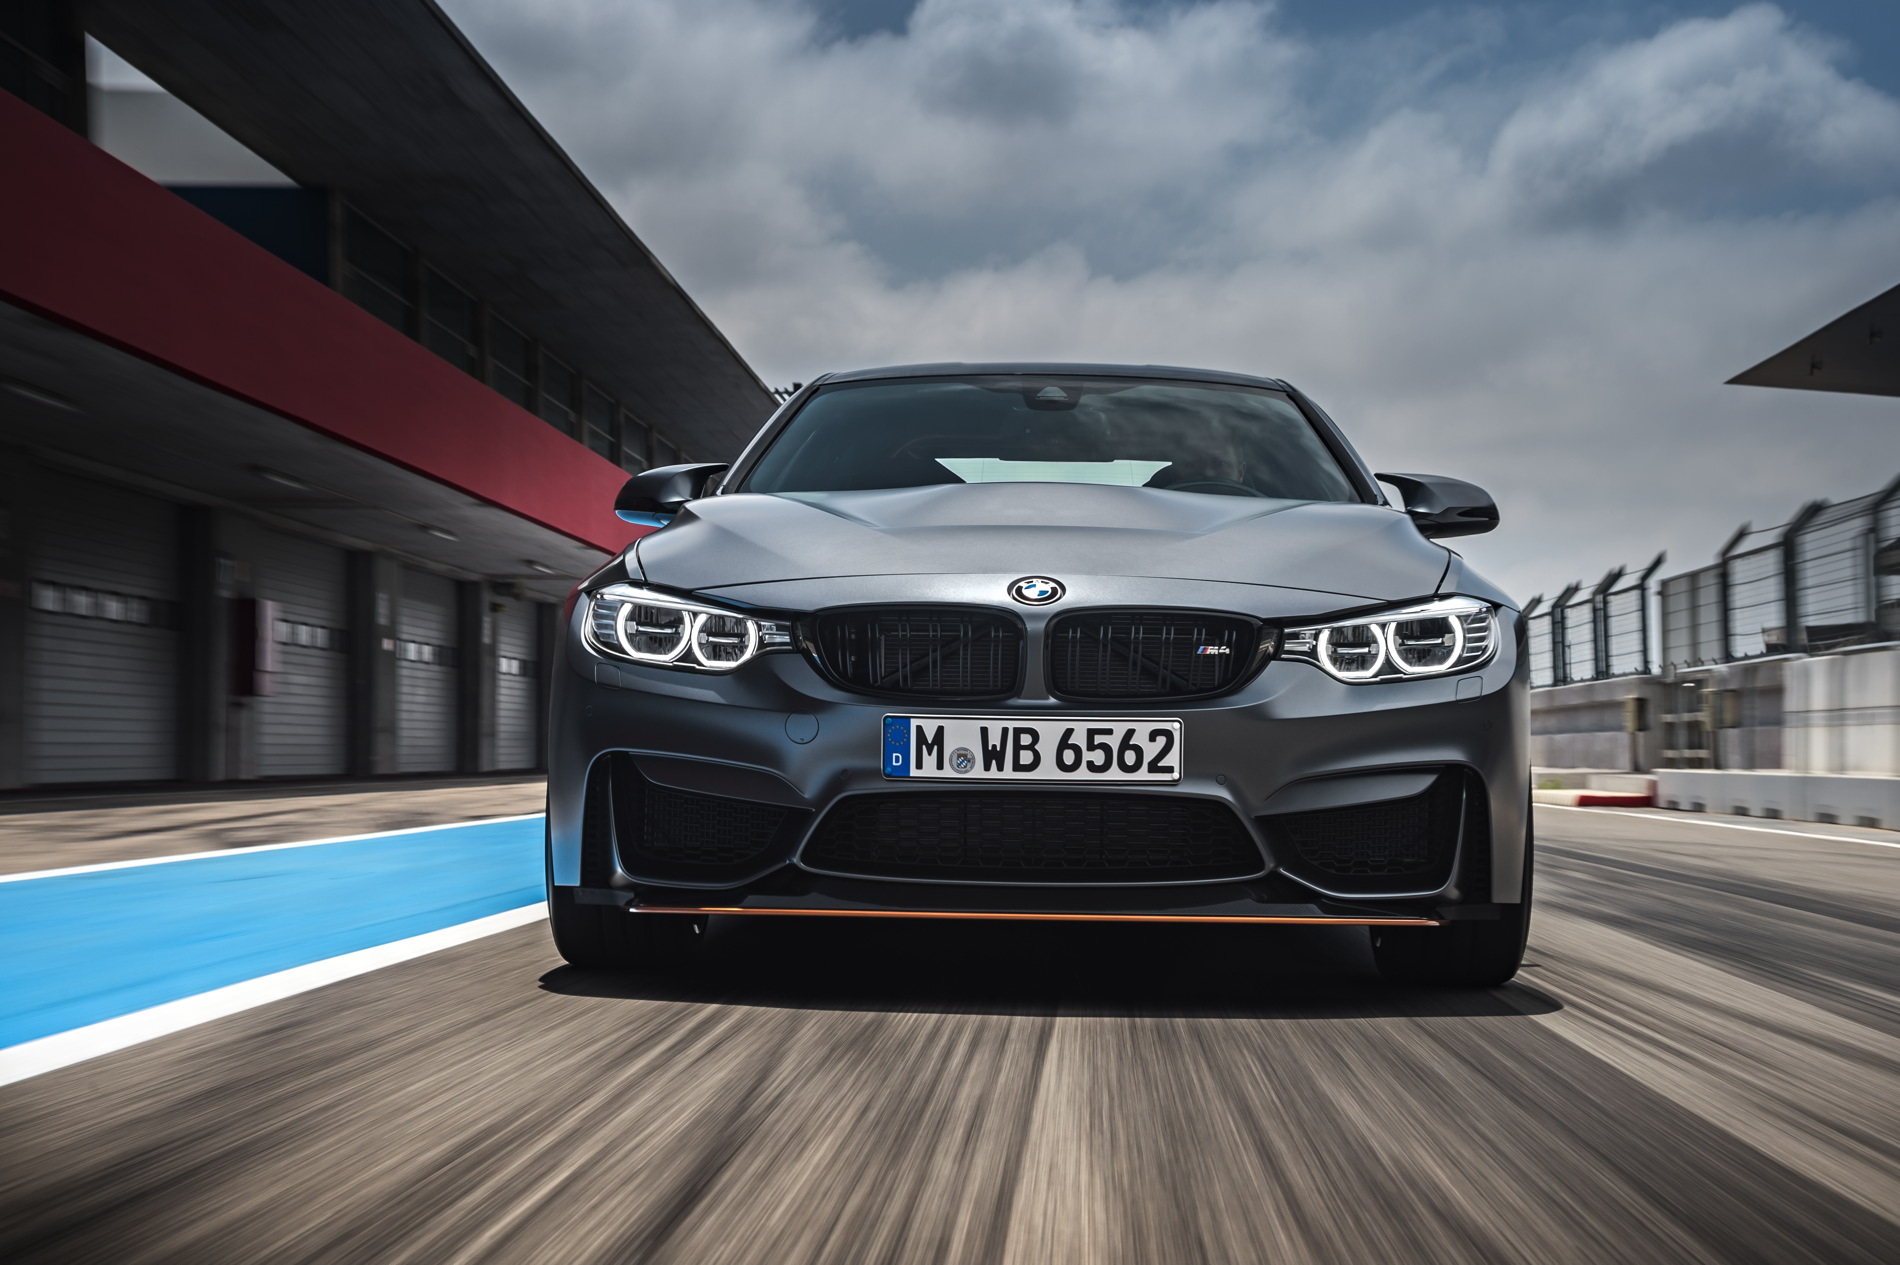 2016 BMW M4 GTS images 1900x1200 wallpaper 35